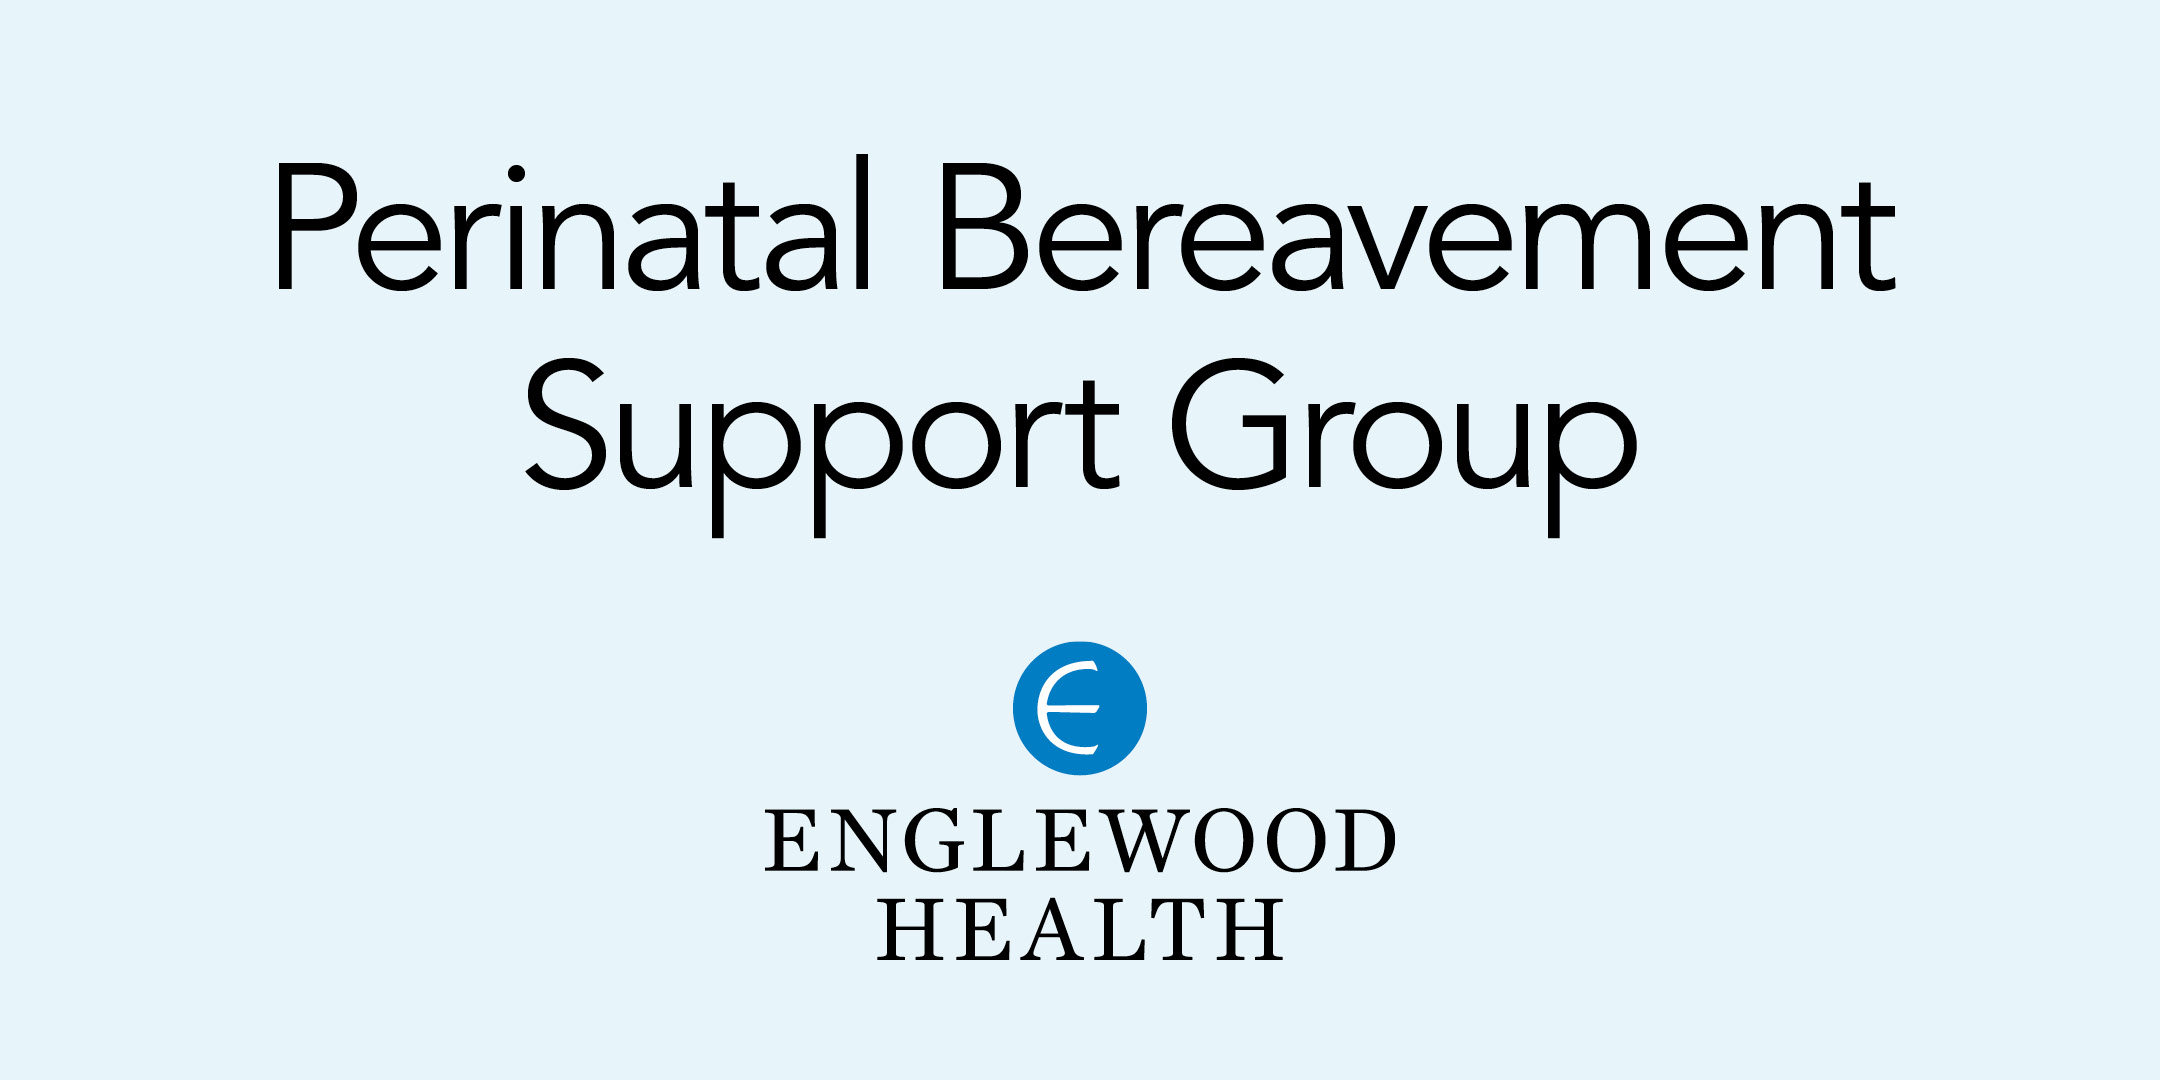 More info: Perinatal Bereavement Support Group